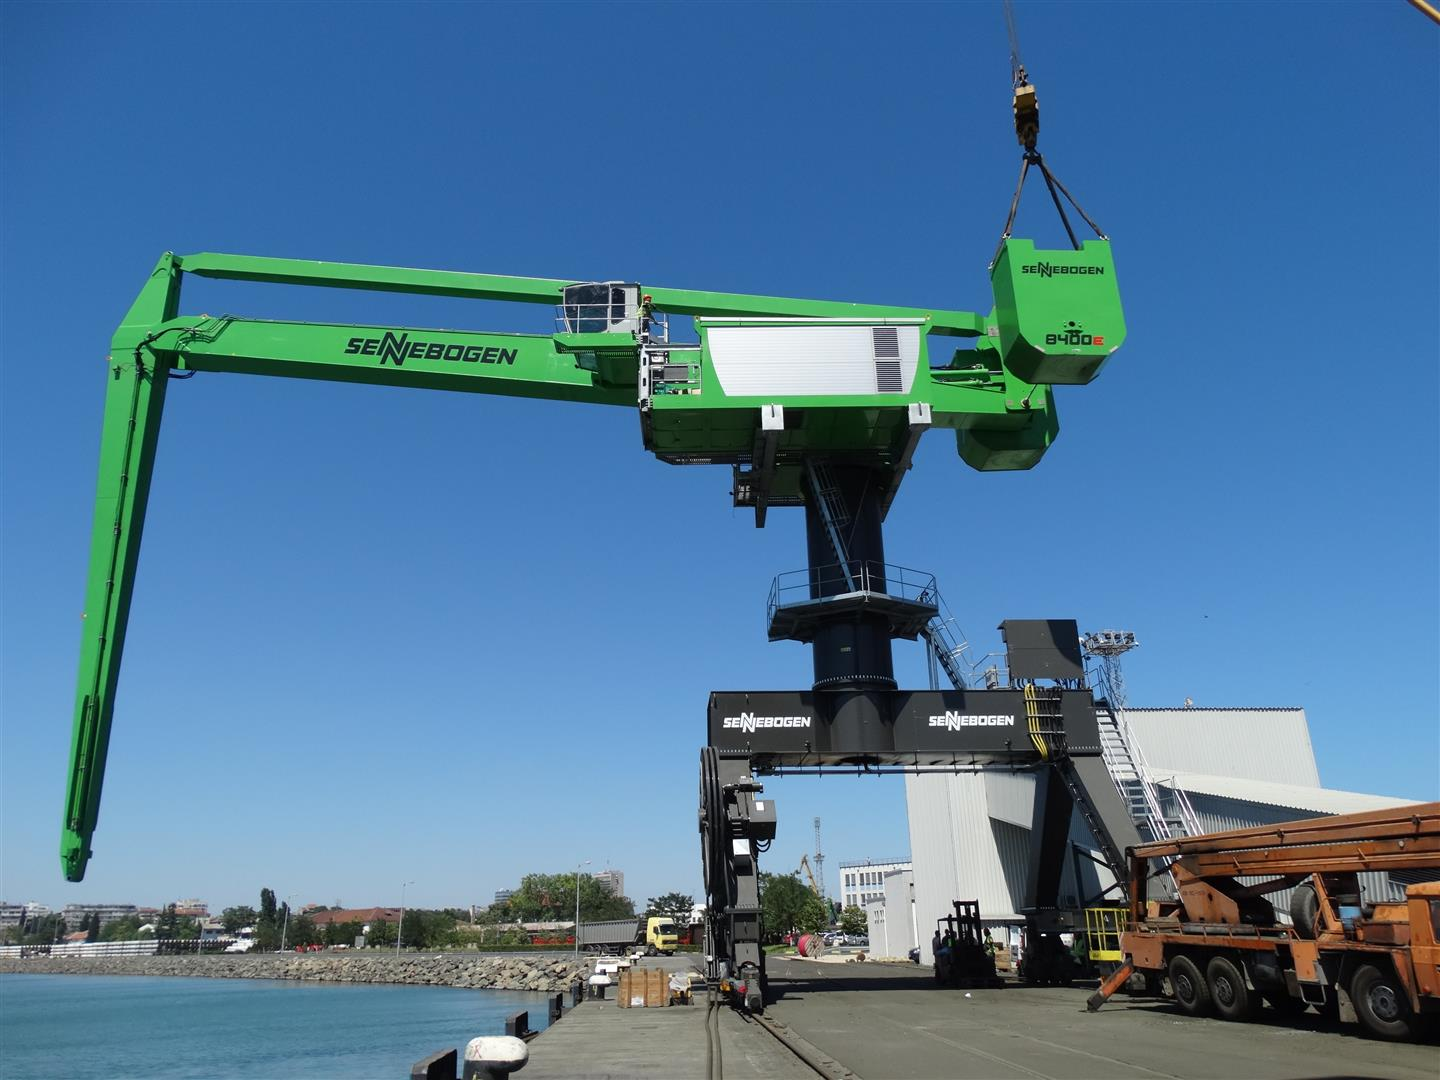 The first Sennebogen 8400 EQ in now in operation at the Port of Burgas